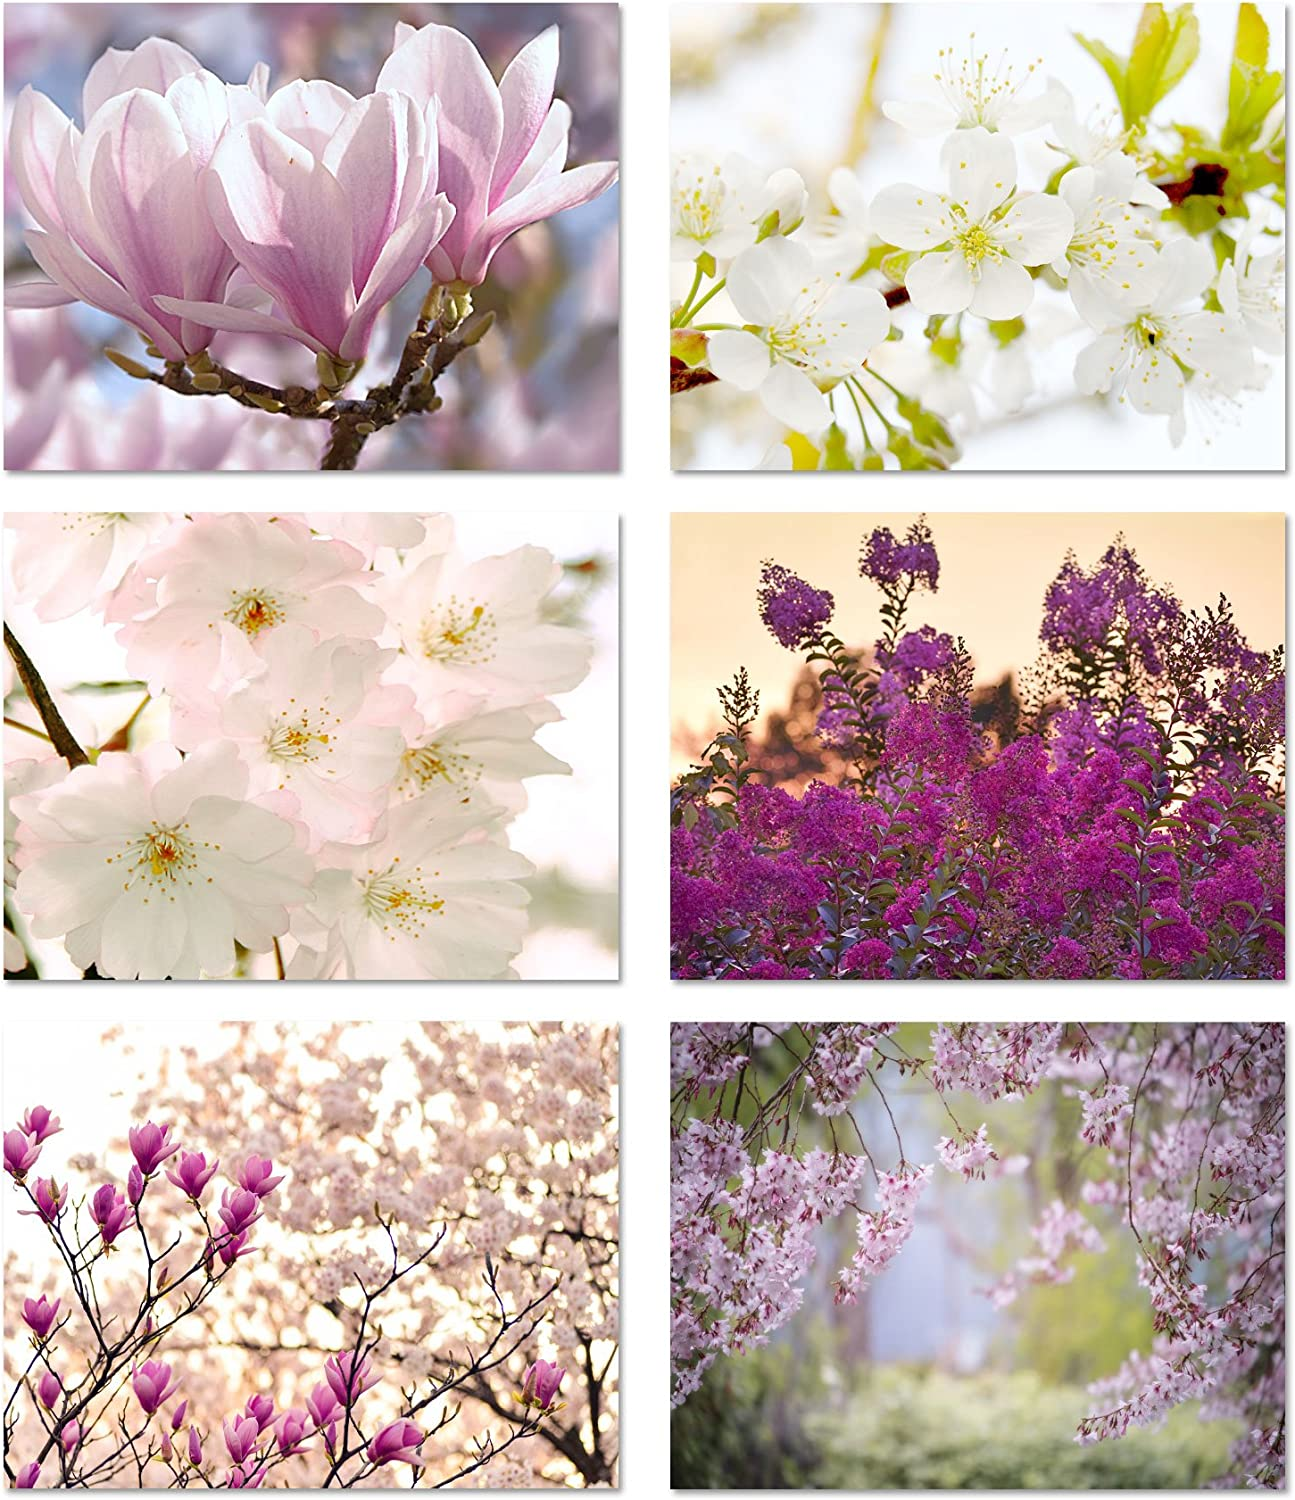 """Spring Blossoms Blank Note Cards - Flower Greeting Cards with Envelopes - 6 Unique Designs - 5.5""""x4.25"""" (12 Pack)"""